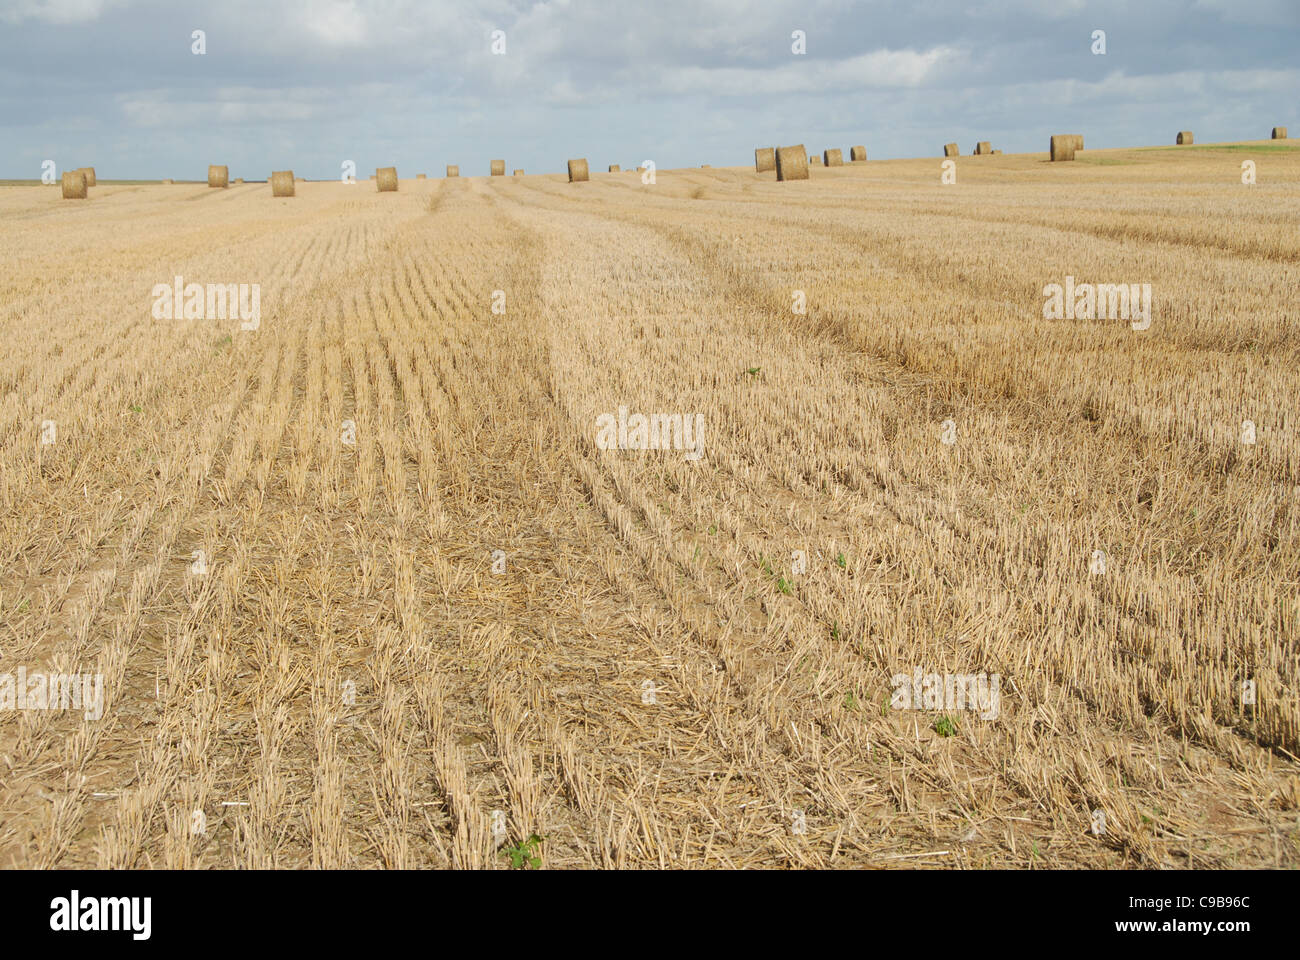 Wheat balls on a corn field after autumn harvest in Picardy, northern France - Stock Image